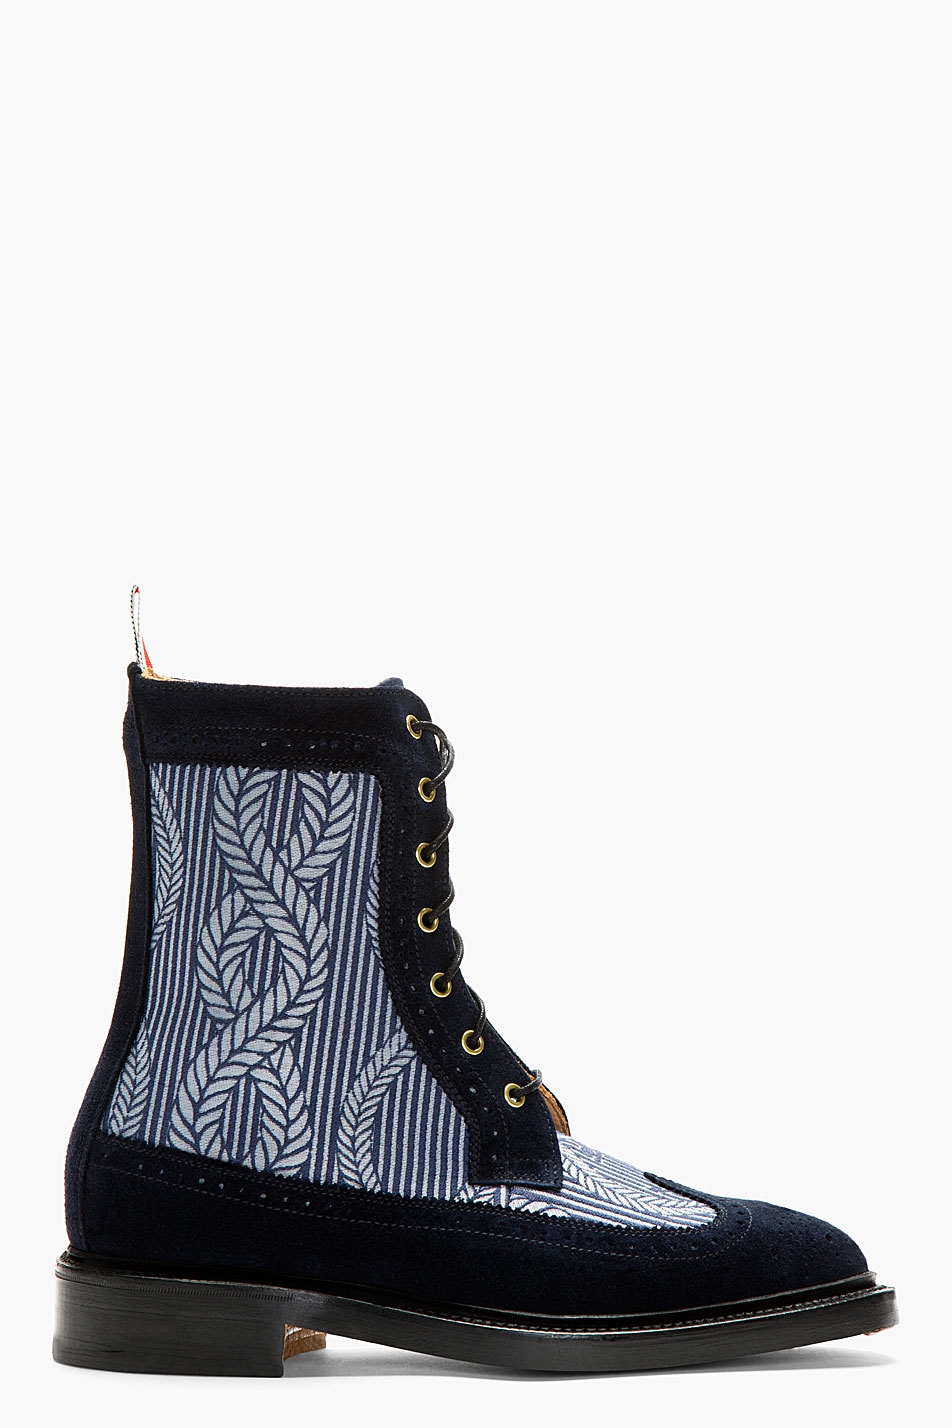 thom browne navy longwing mariner ankle boots in blue for